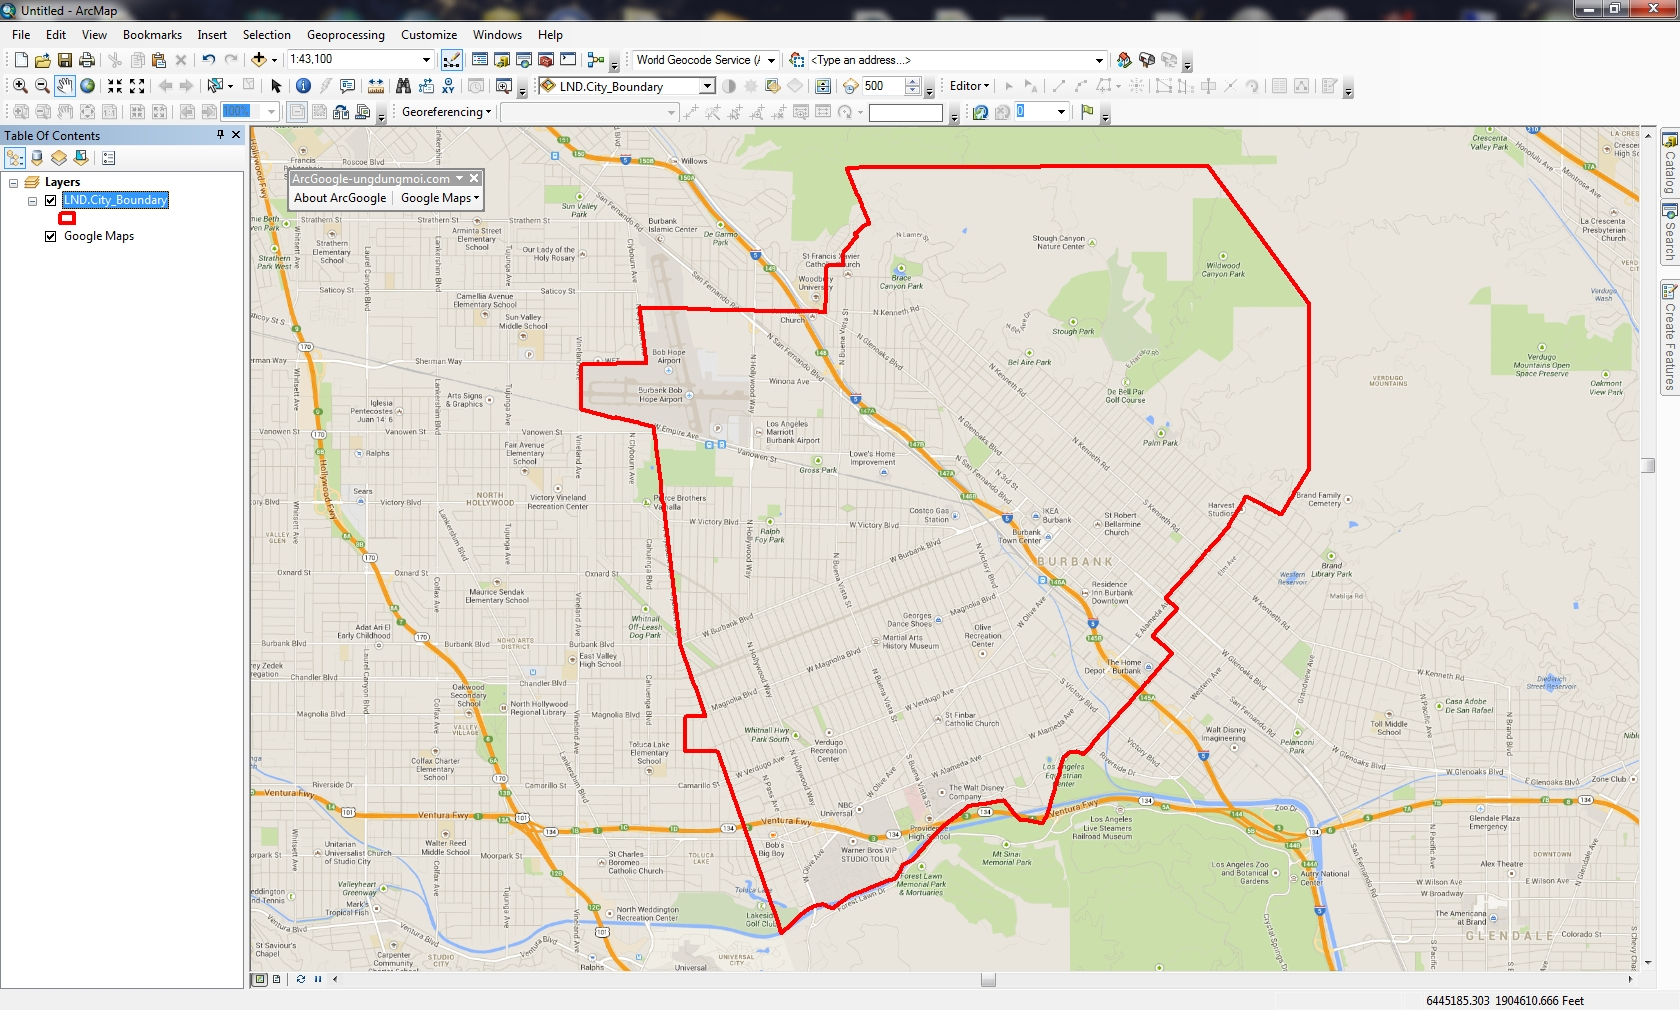 My Adventure with Google Maps in ArcMap | SoCalGIS org